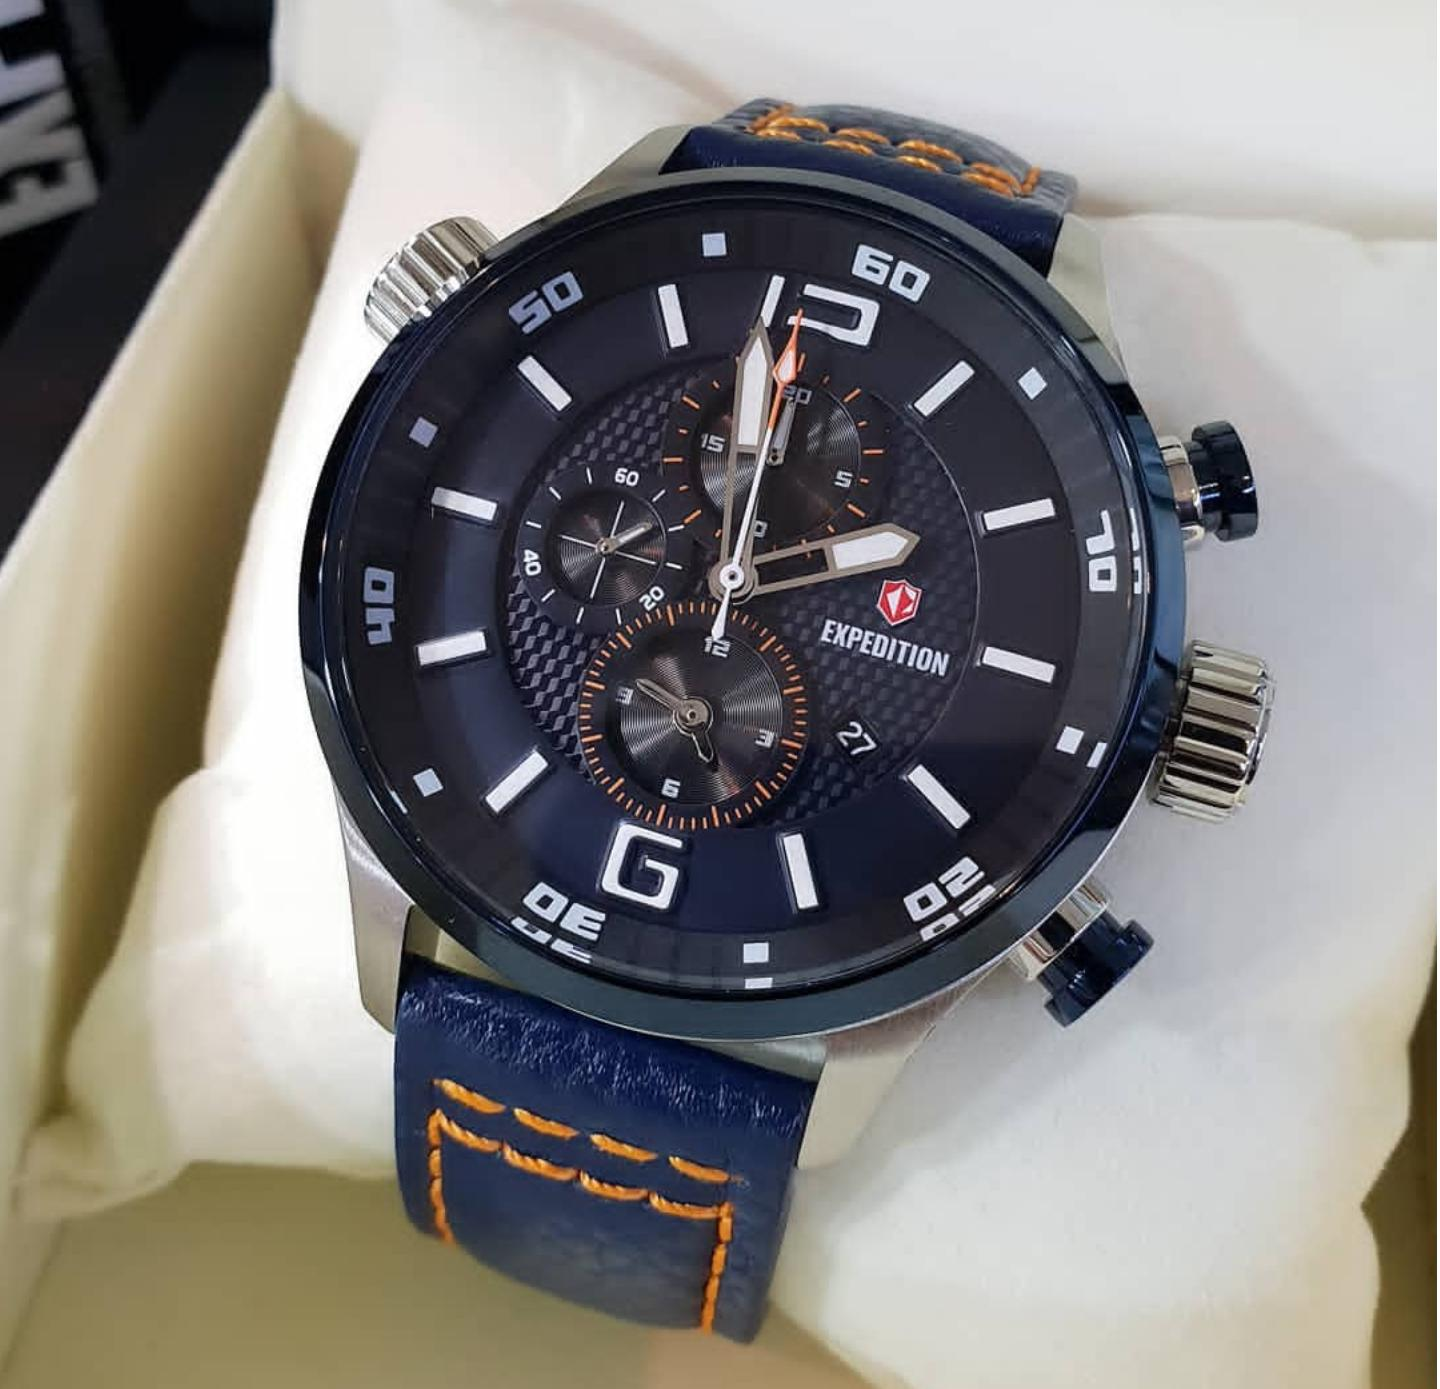 Jam Tangan Expedition Terbaru Pria E6715 Original Limited Edition Leather Strap Ex893991 Biru